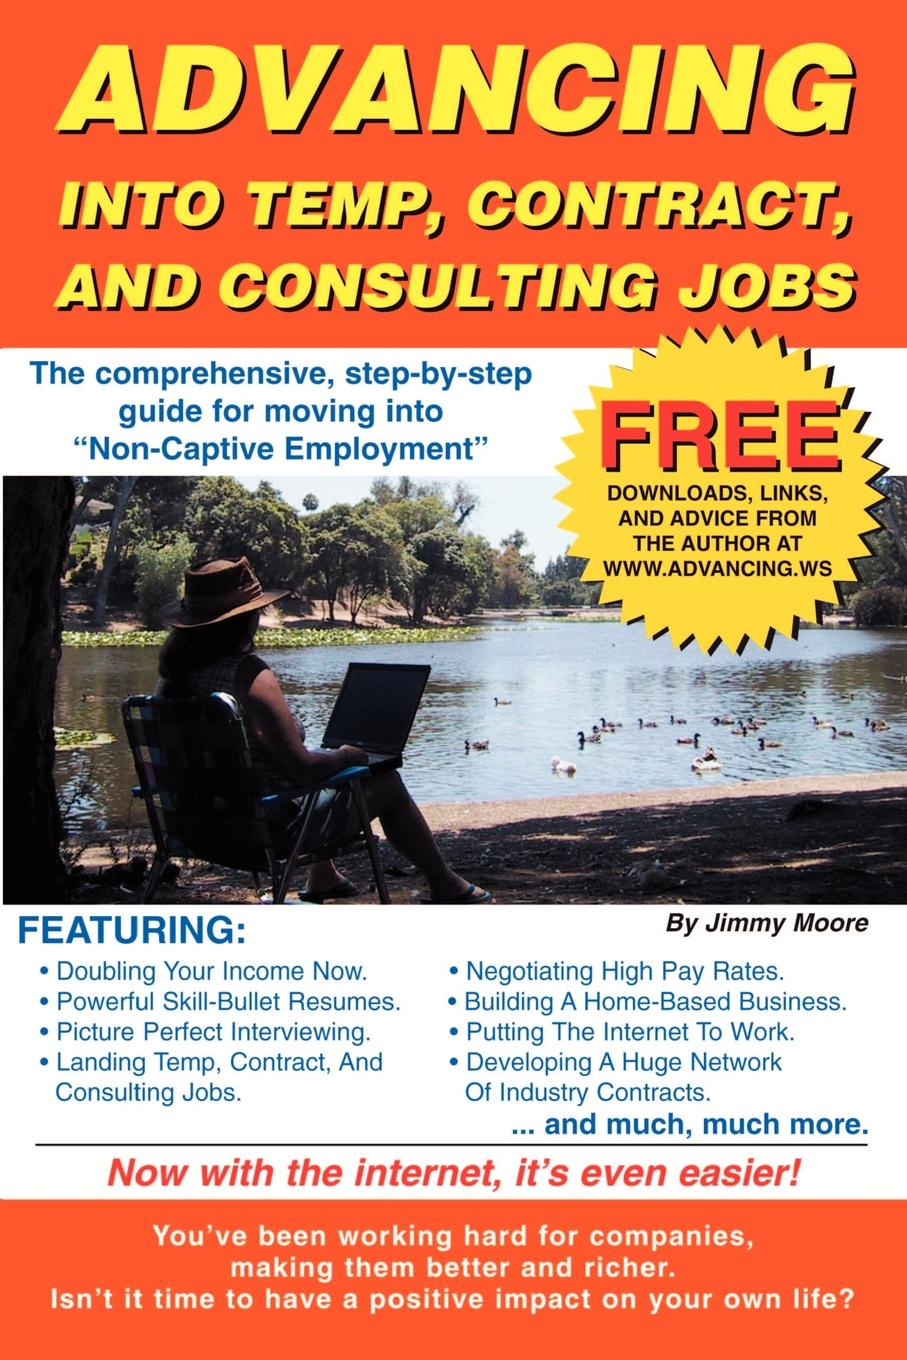 Jimmy Moore Advancing Into Temp, Contract, and Consulting Jobs. A Complete Guide to Starting and Promoting Your Own Consulting Business adam toren starting your own business become an entrepreneur